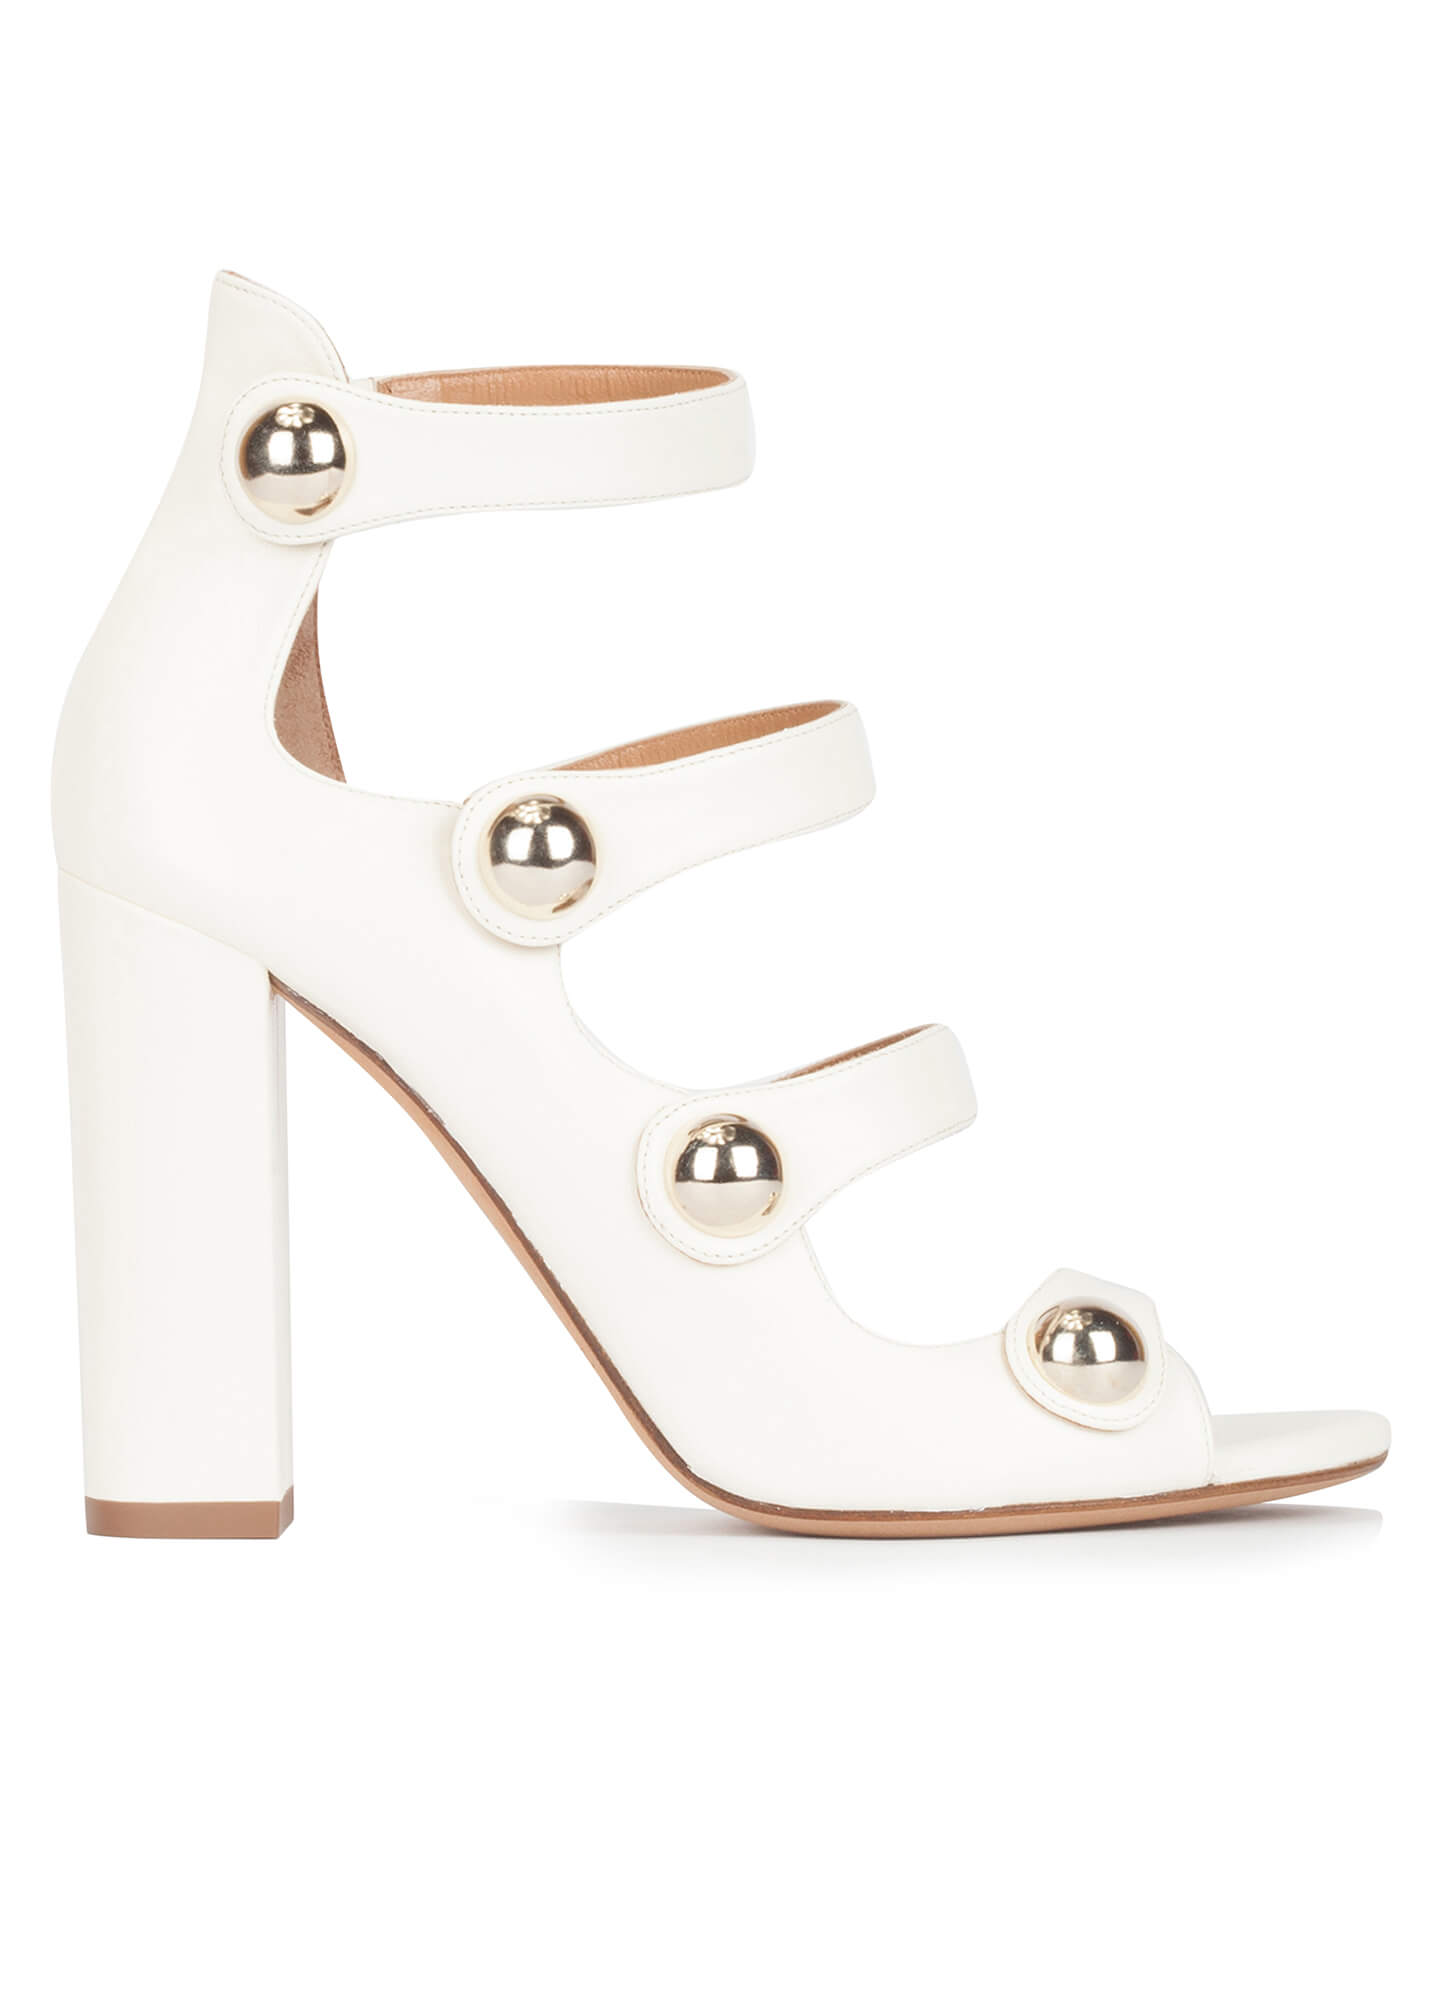 d8235c9bda White strappy high block heel sandals in leather . PURA LOPEZ